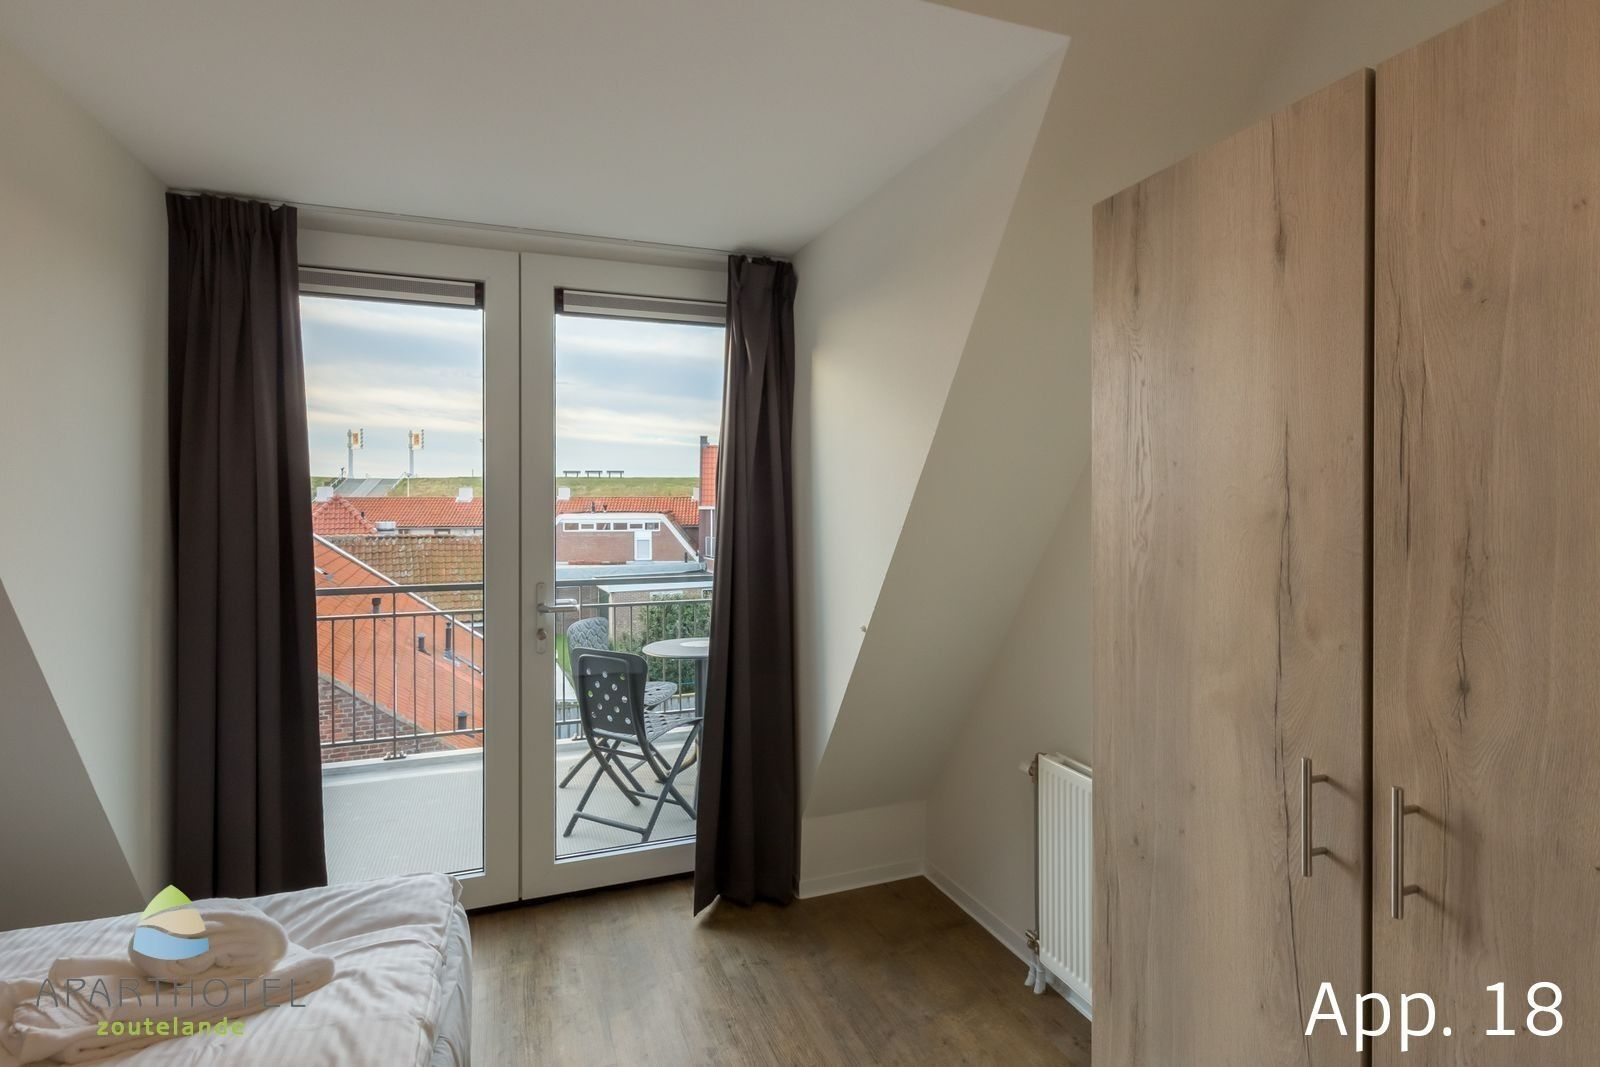 Luxuriöses Appartement für 6 Personen | Zoutelande